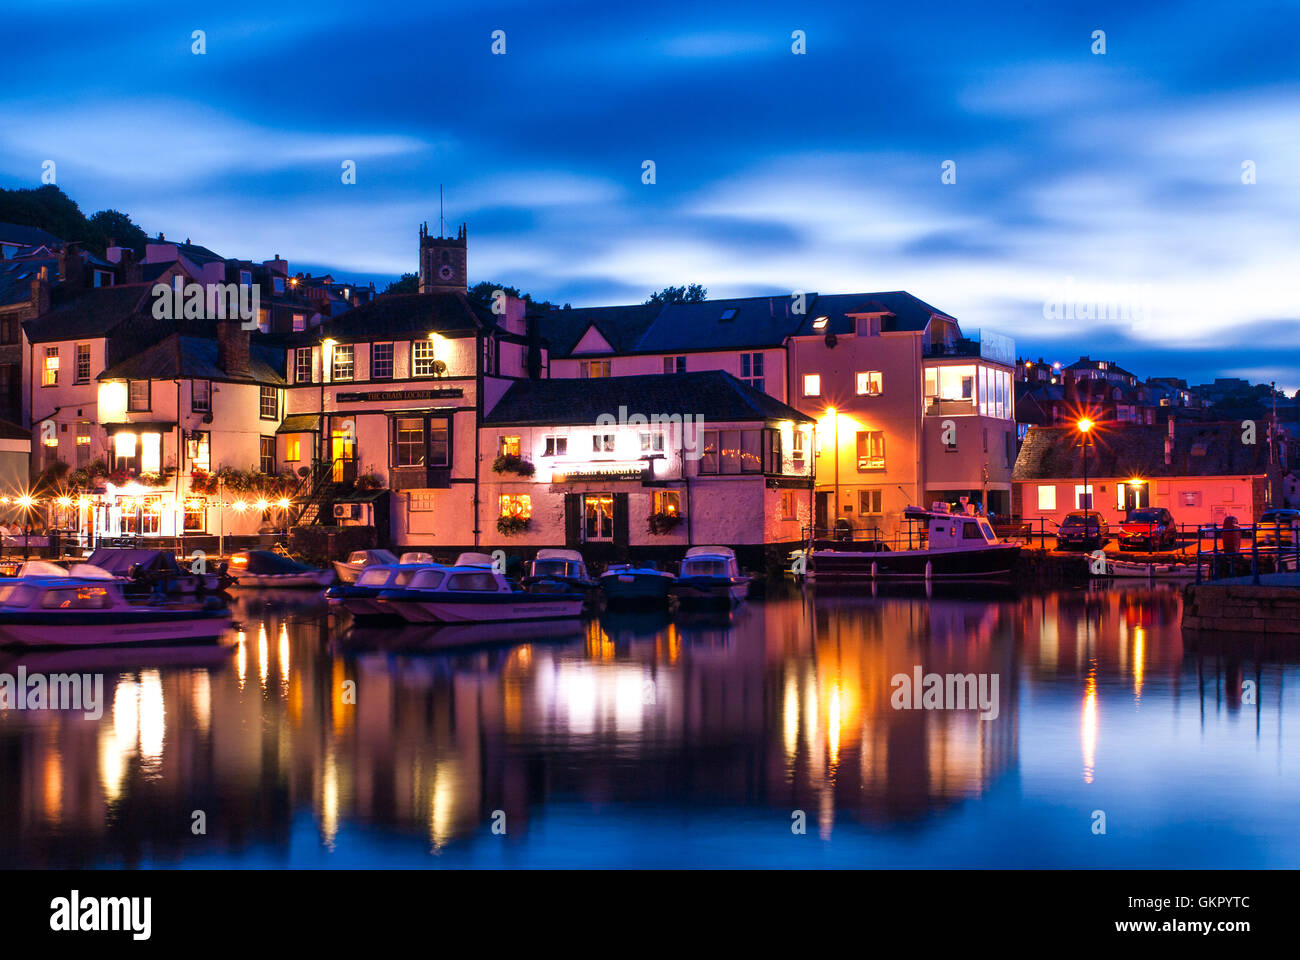 A beautiful early evening summer view of pubs at the waterfront in Falmouth. A typical view of Cornwall in Summer. - Stock Image